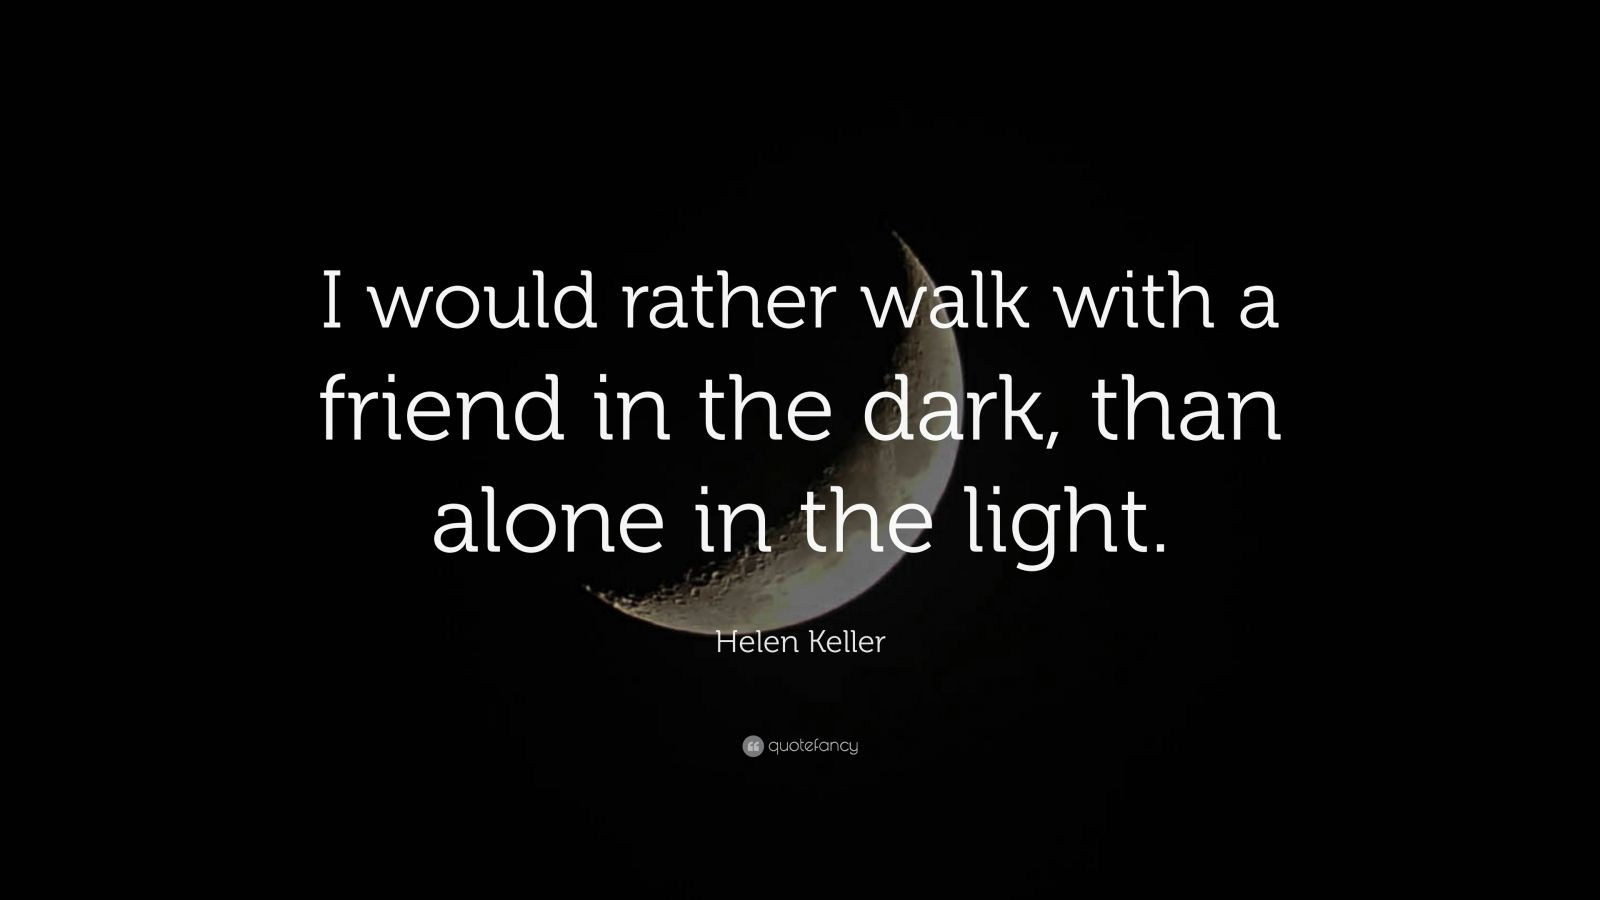 Friendship quotes i would rather walk with a friend in the dark friendship quotes i would rather walk with a friend in the dark than alone in the light helen keller thecheapjerseys Gallery